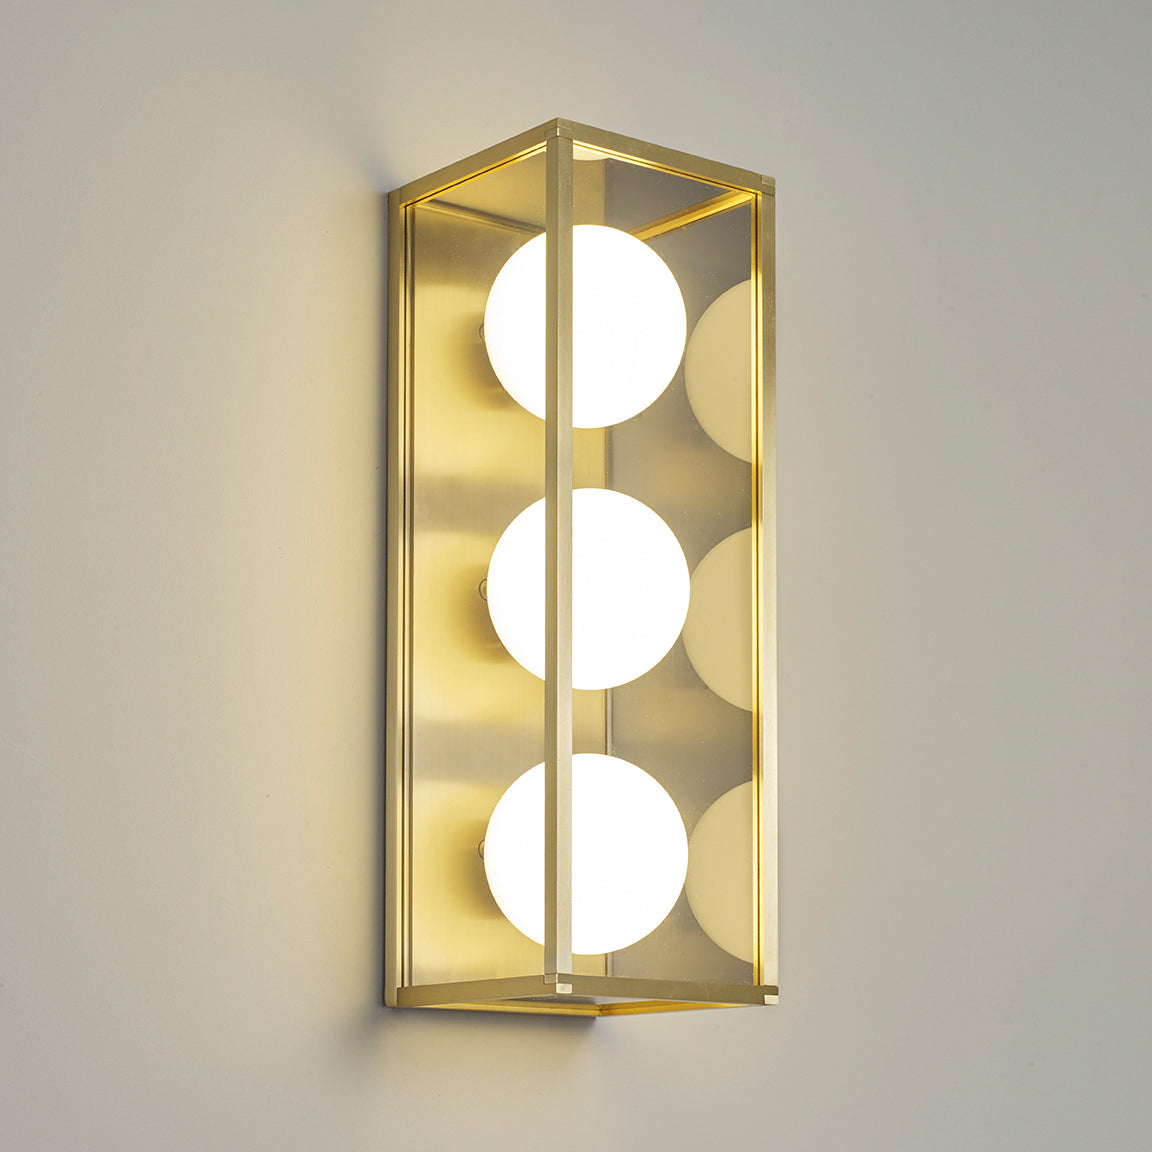 Pearl 3 Wall Light